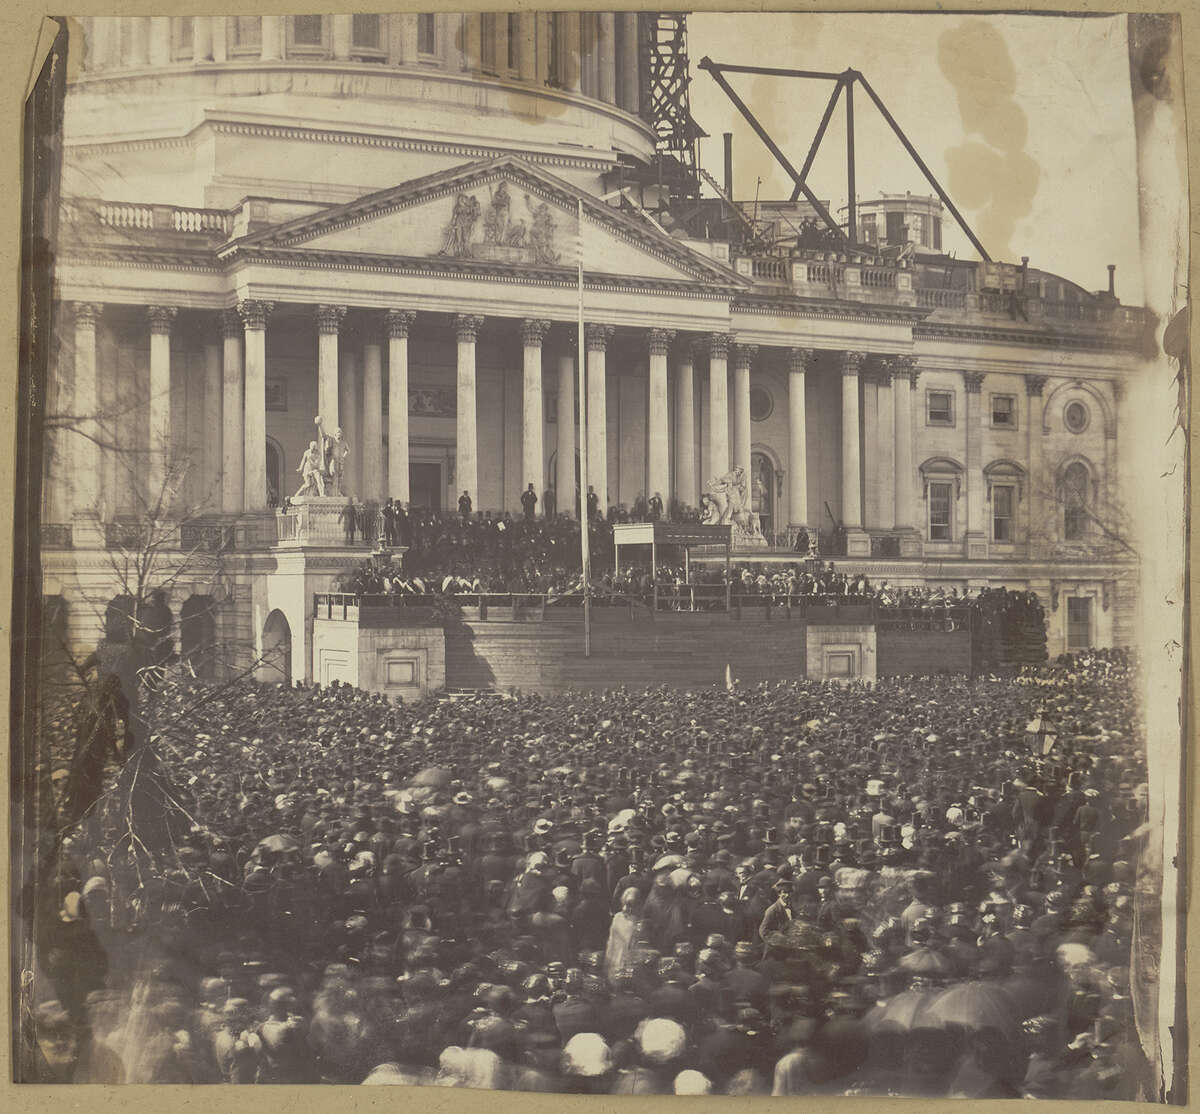 Abraham Lincoln is inaugurated at the Capitol on March 4, 1861.